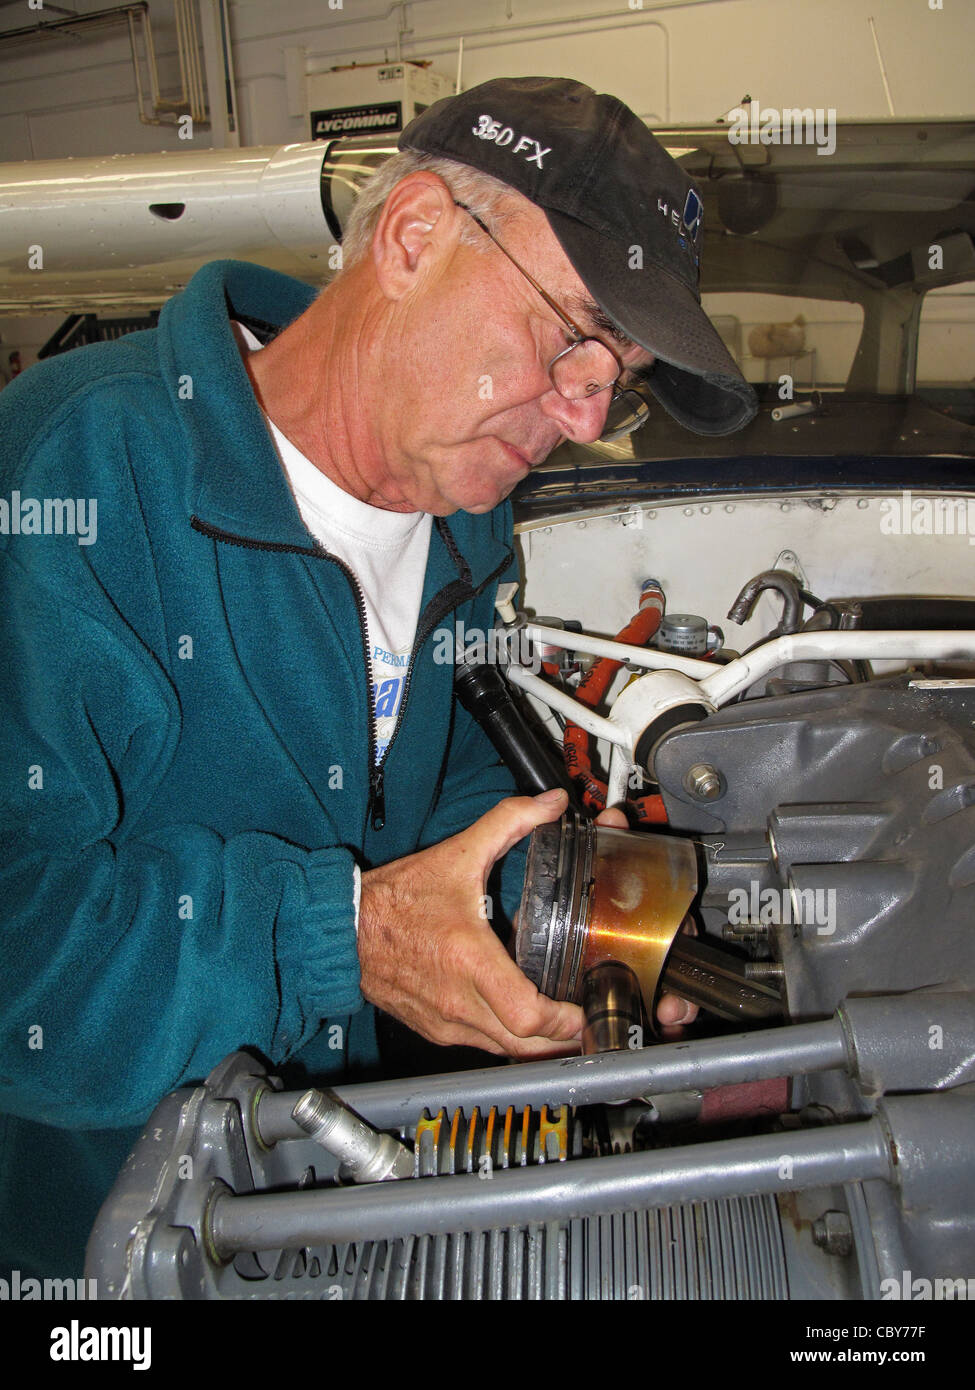 aircraft mechanic Gary Price replaces a cylinder single engine airplane - Stock Image